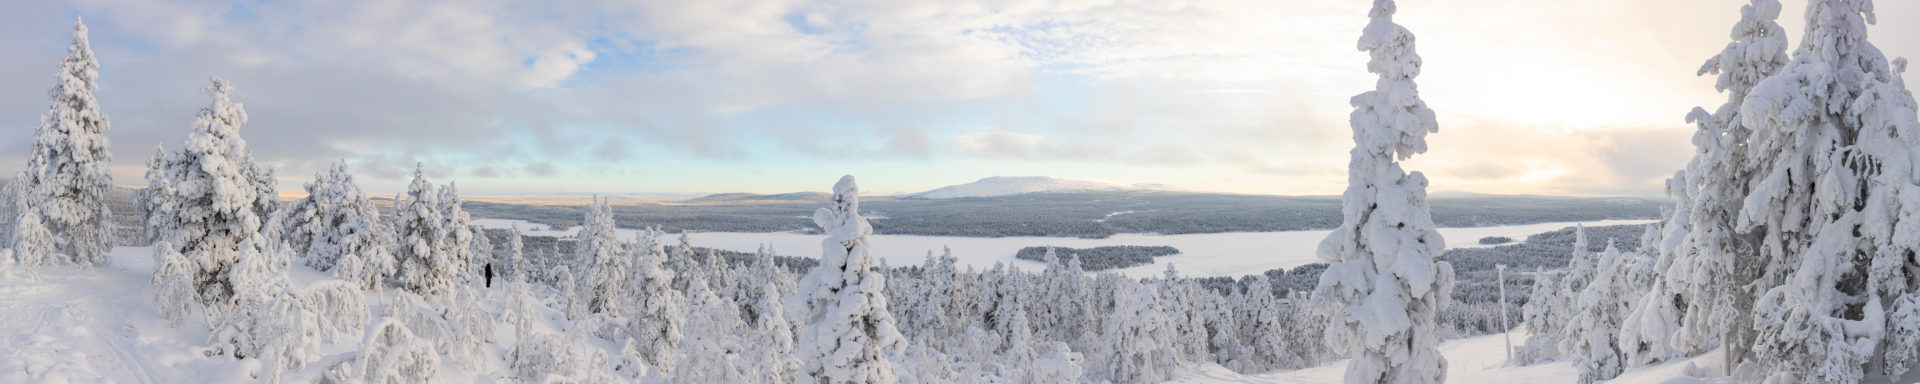 Finland, Lapland, winter, Enontekiö, landscape of Jyppyrä, view of Pyhäkero and Ounasjoki